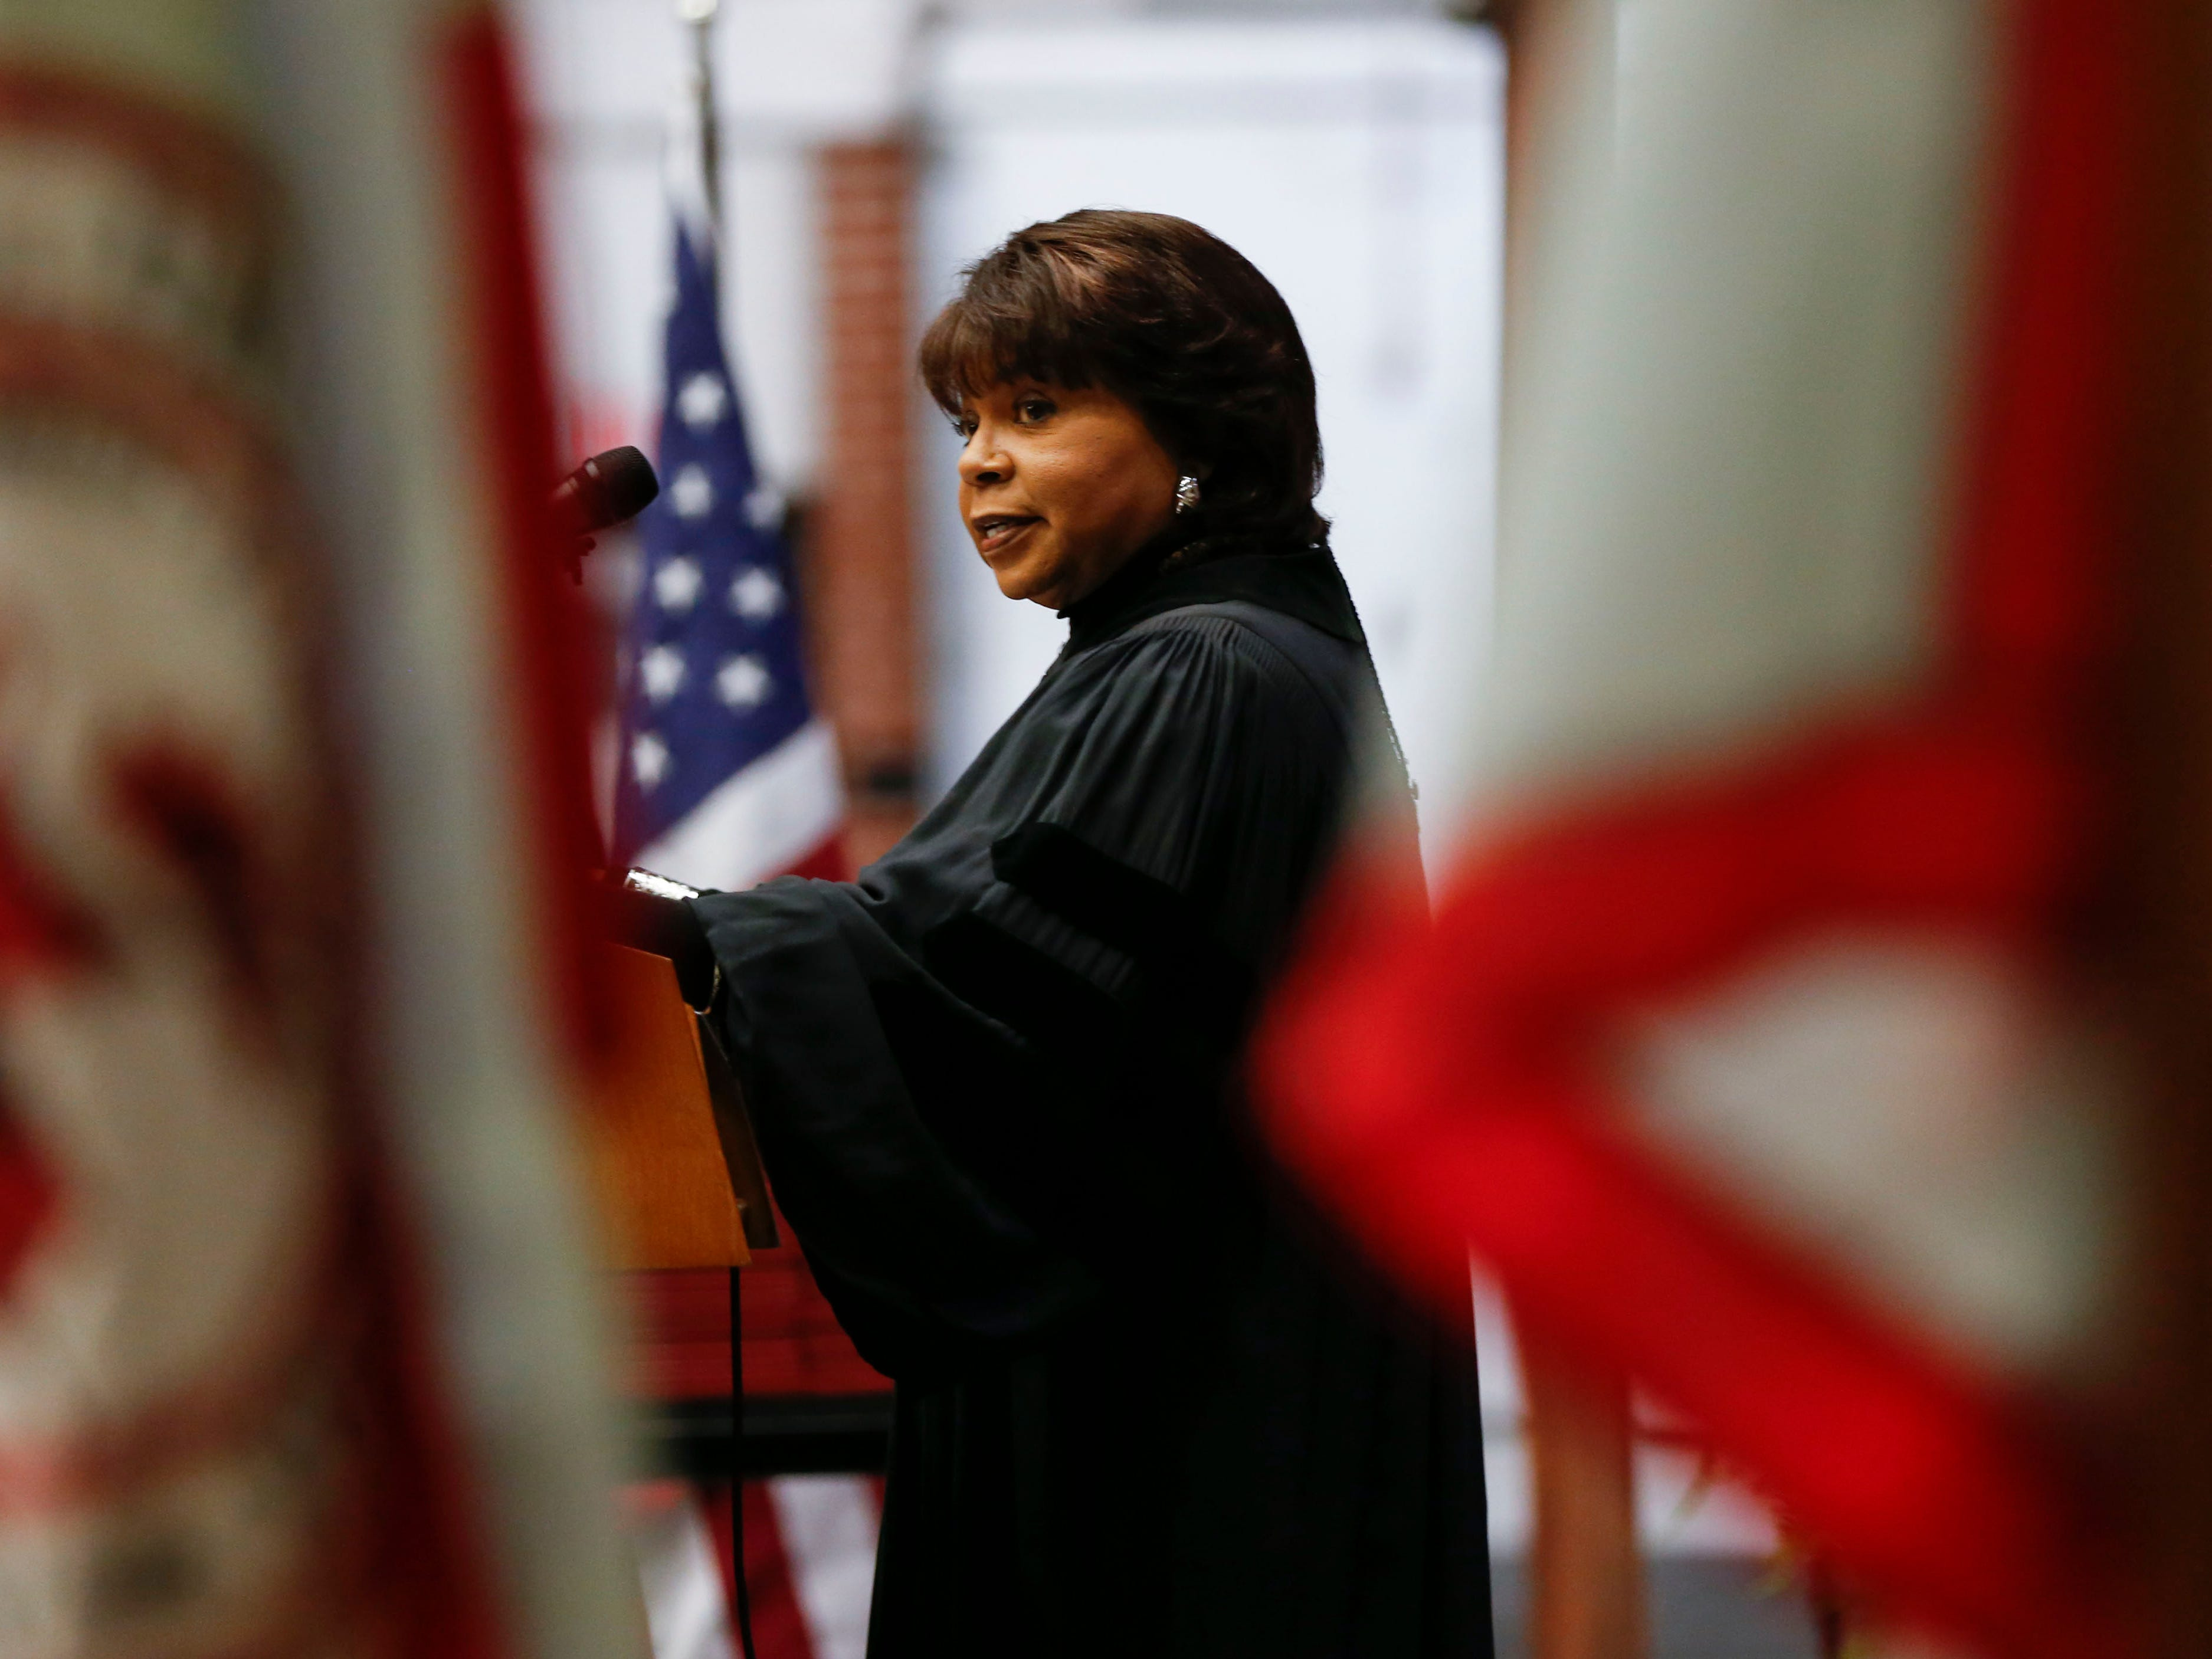 Cheryl Brown Henderson, the daughter of Rev. Oliver Brown who filed a lawsuit against the Topeka Board of Education leading to the famous civil rights case Brown vs. Board of Education, delivers the commencement address during the Drury University Commencement Ceremony at the O'Reilly Family Event Center on Saturday, May 11, 2019.